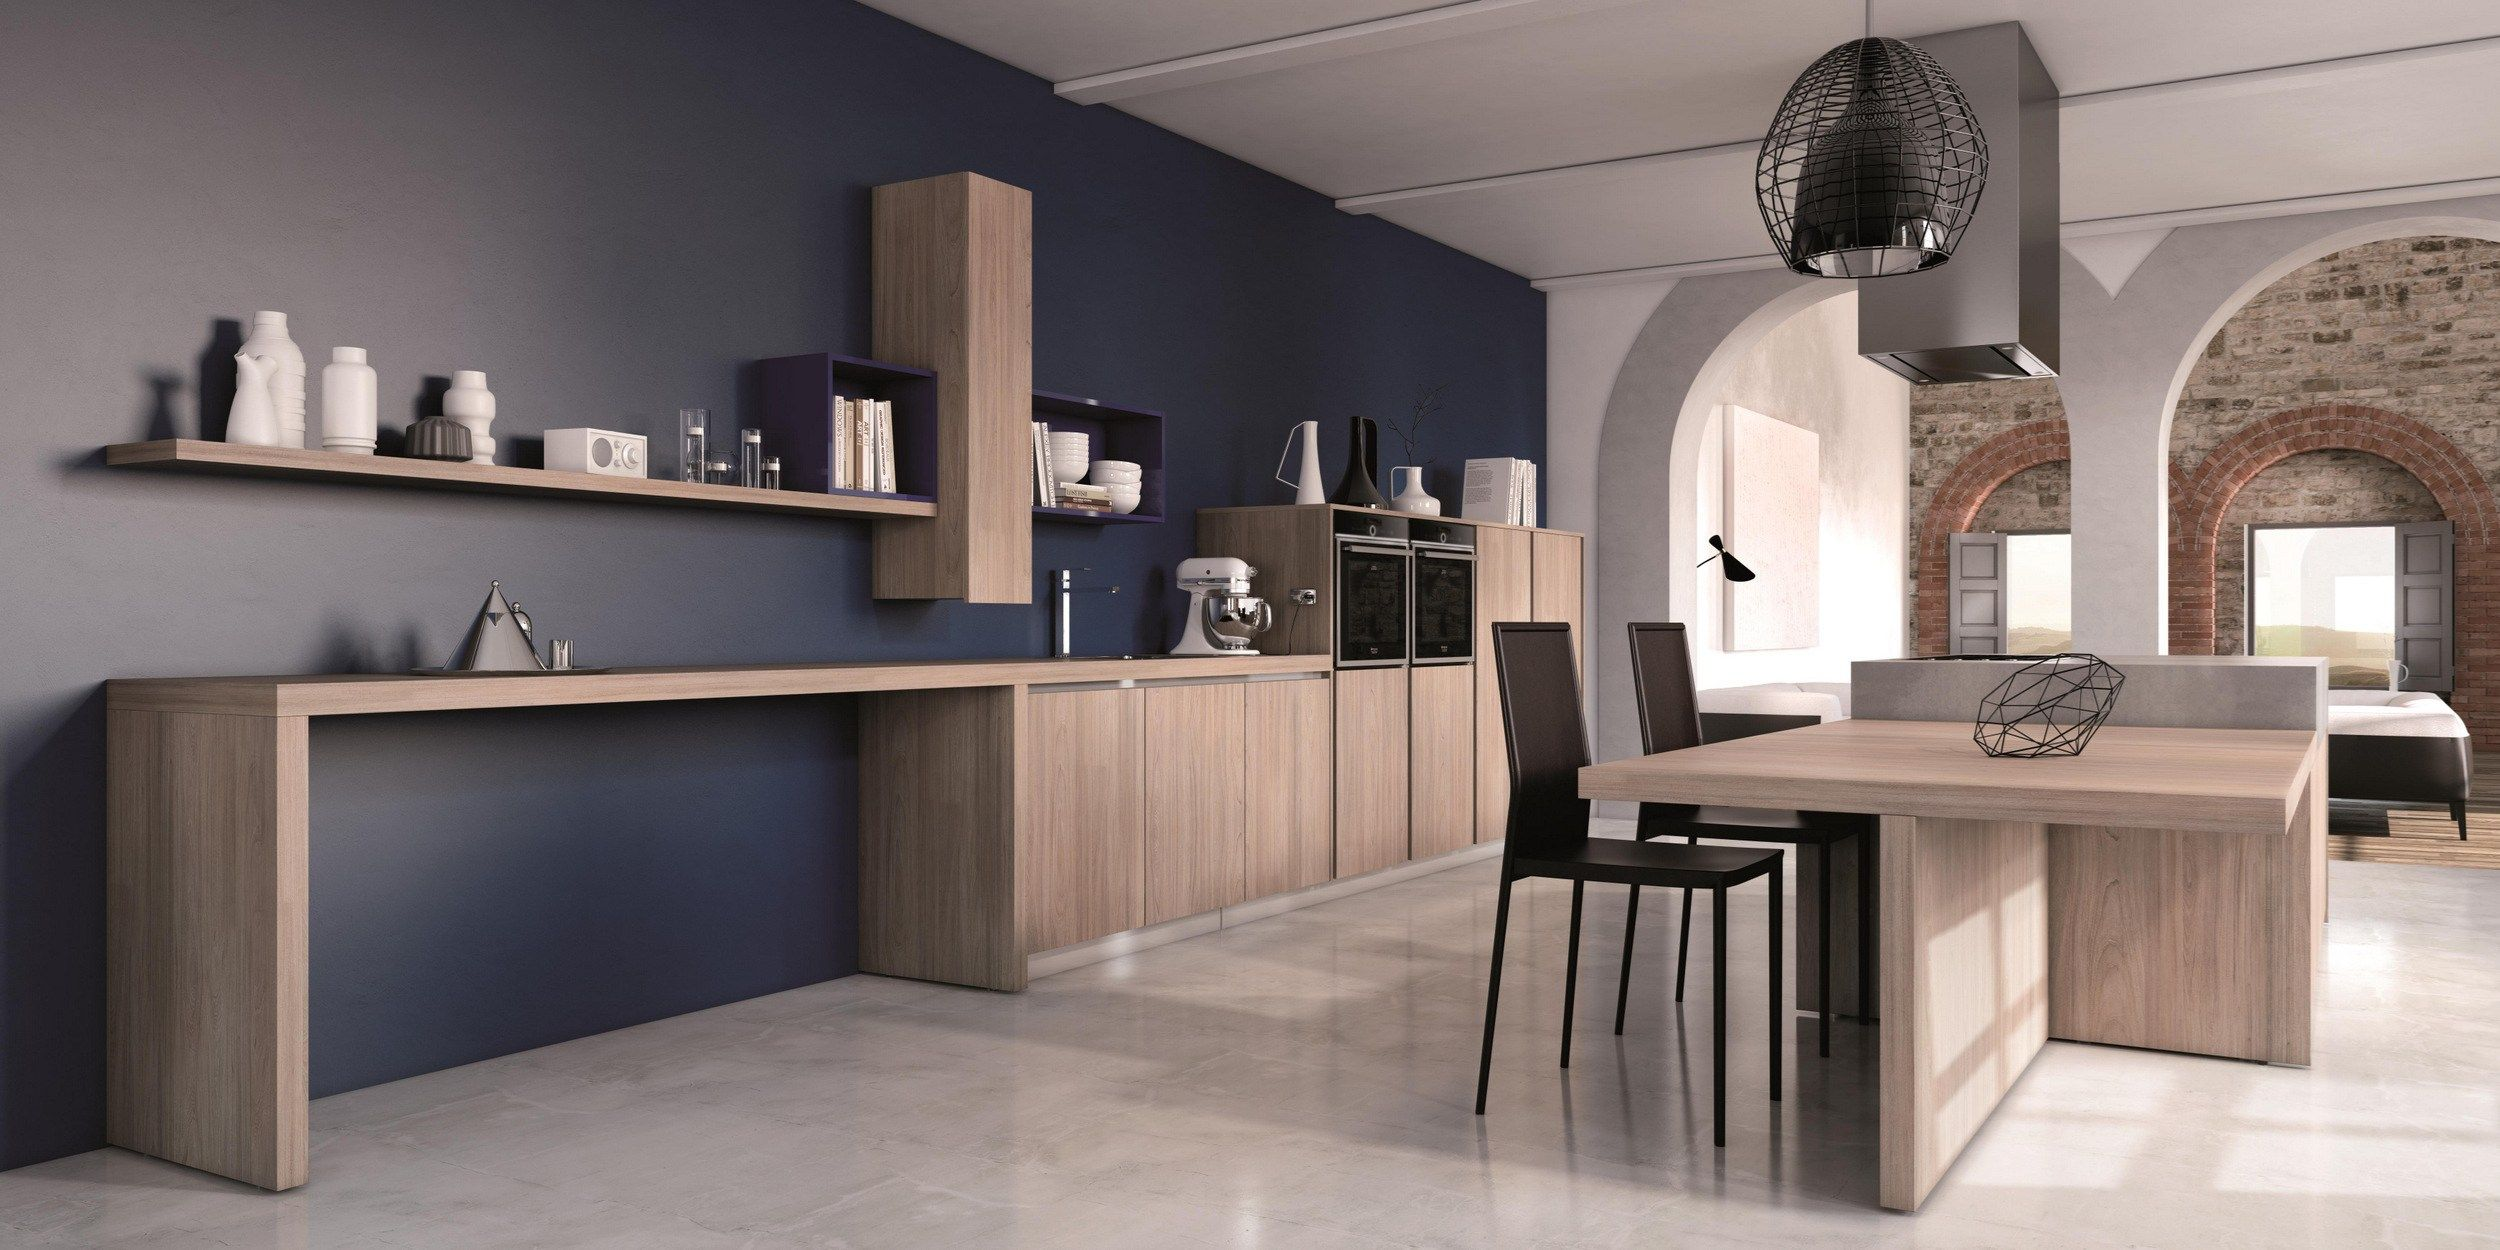 厨房 CRETA by Del Tongo | kitchens & dining rooms | Pinterest | Cucine